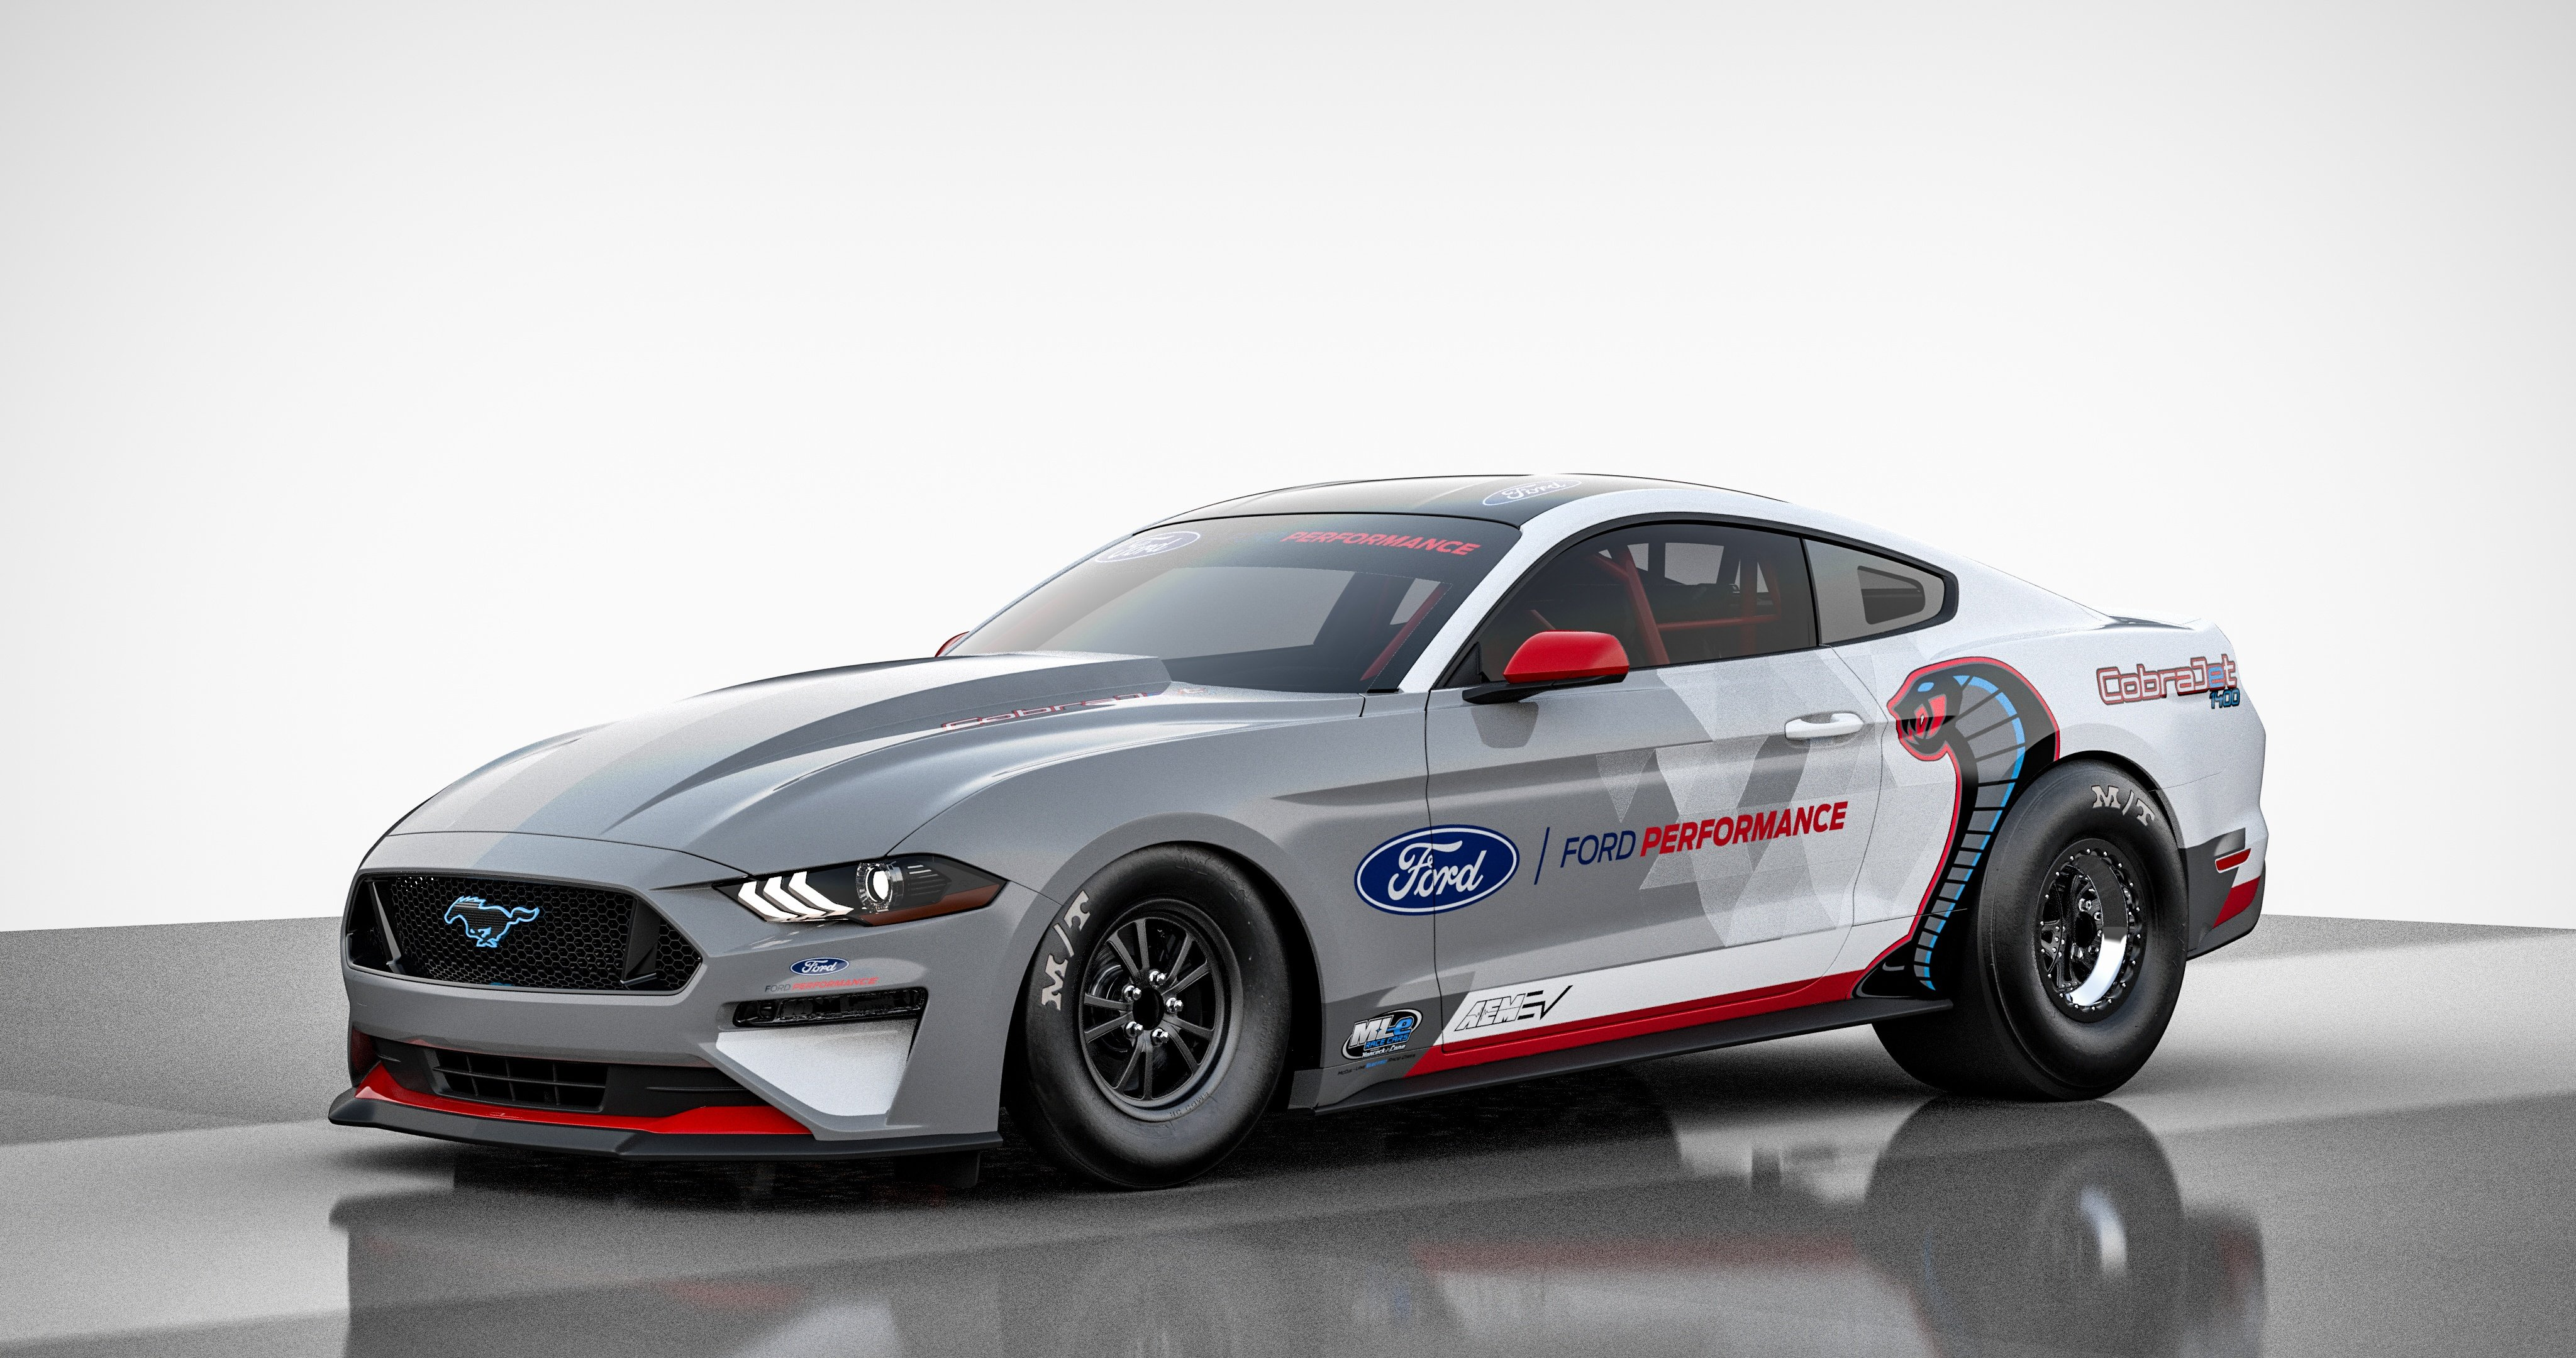 The 1400 HP Mustang Cobra Jet 1400 is Ready for the Drag Strip